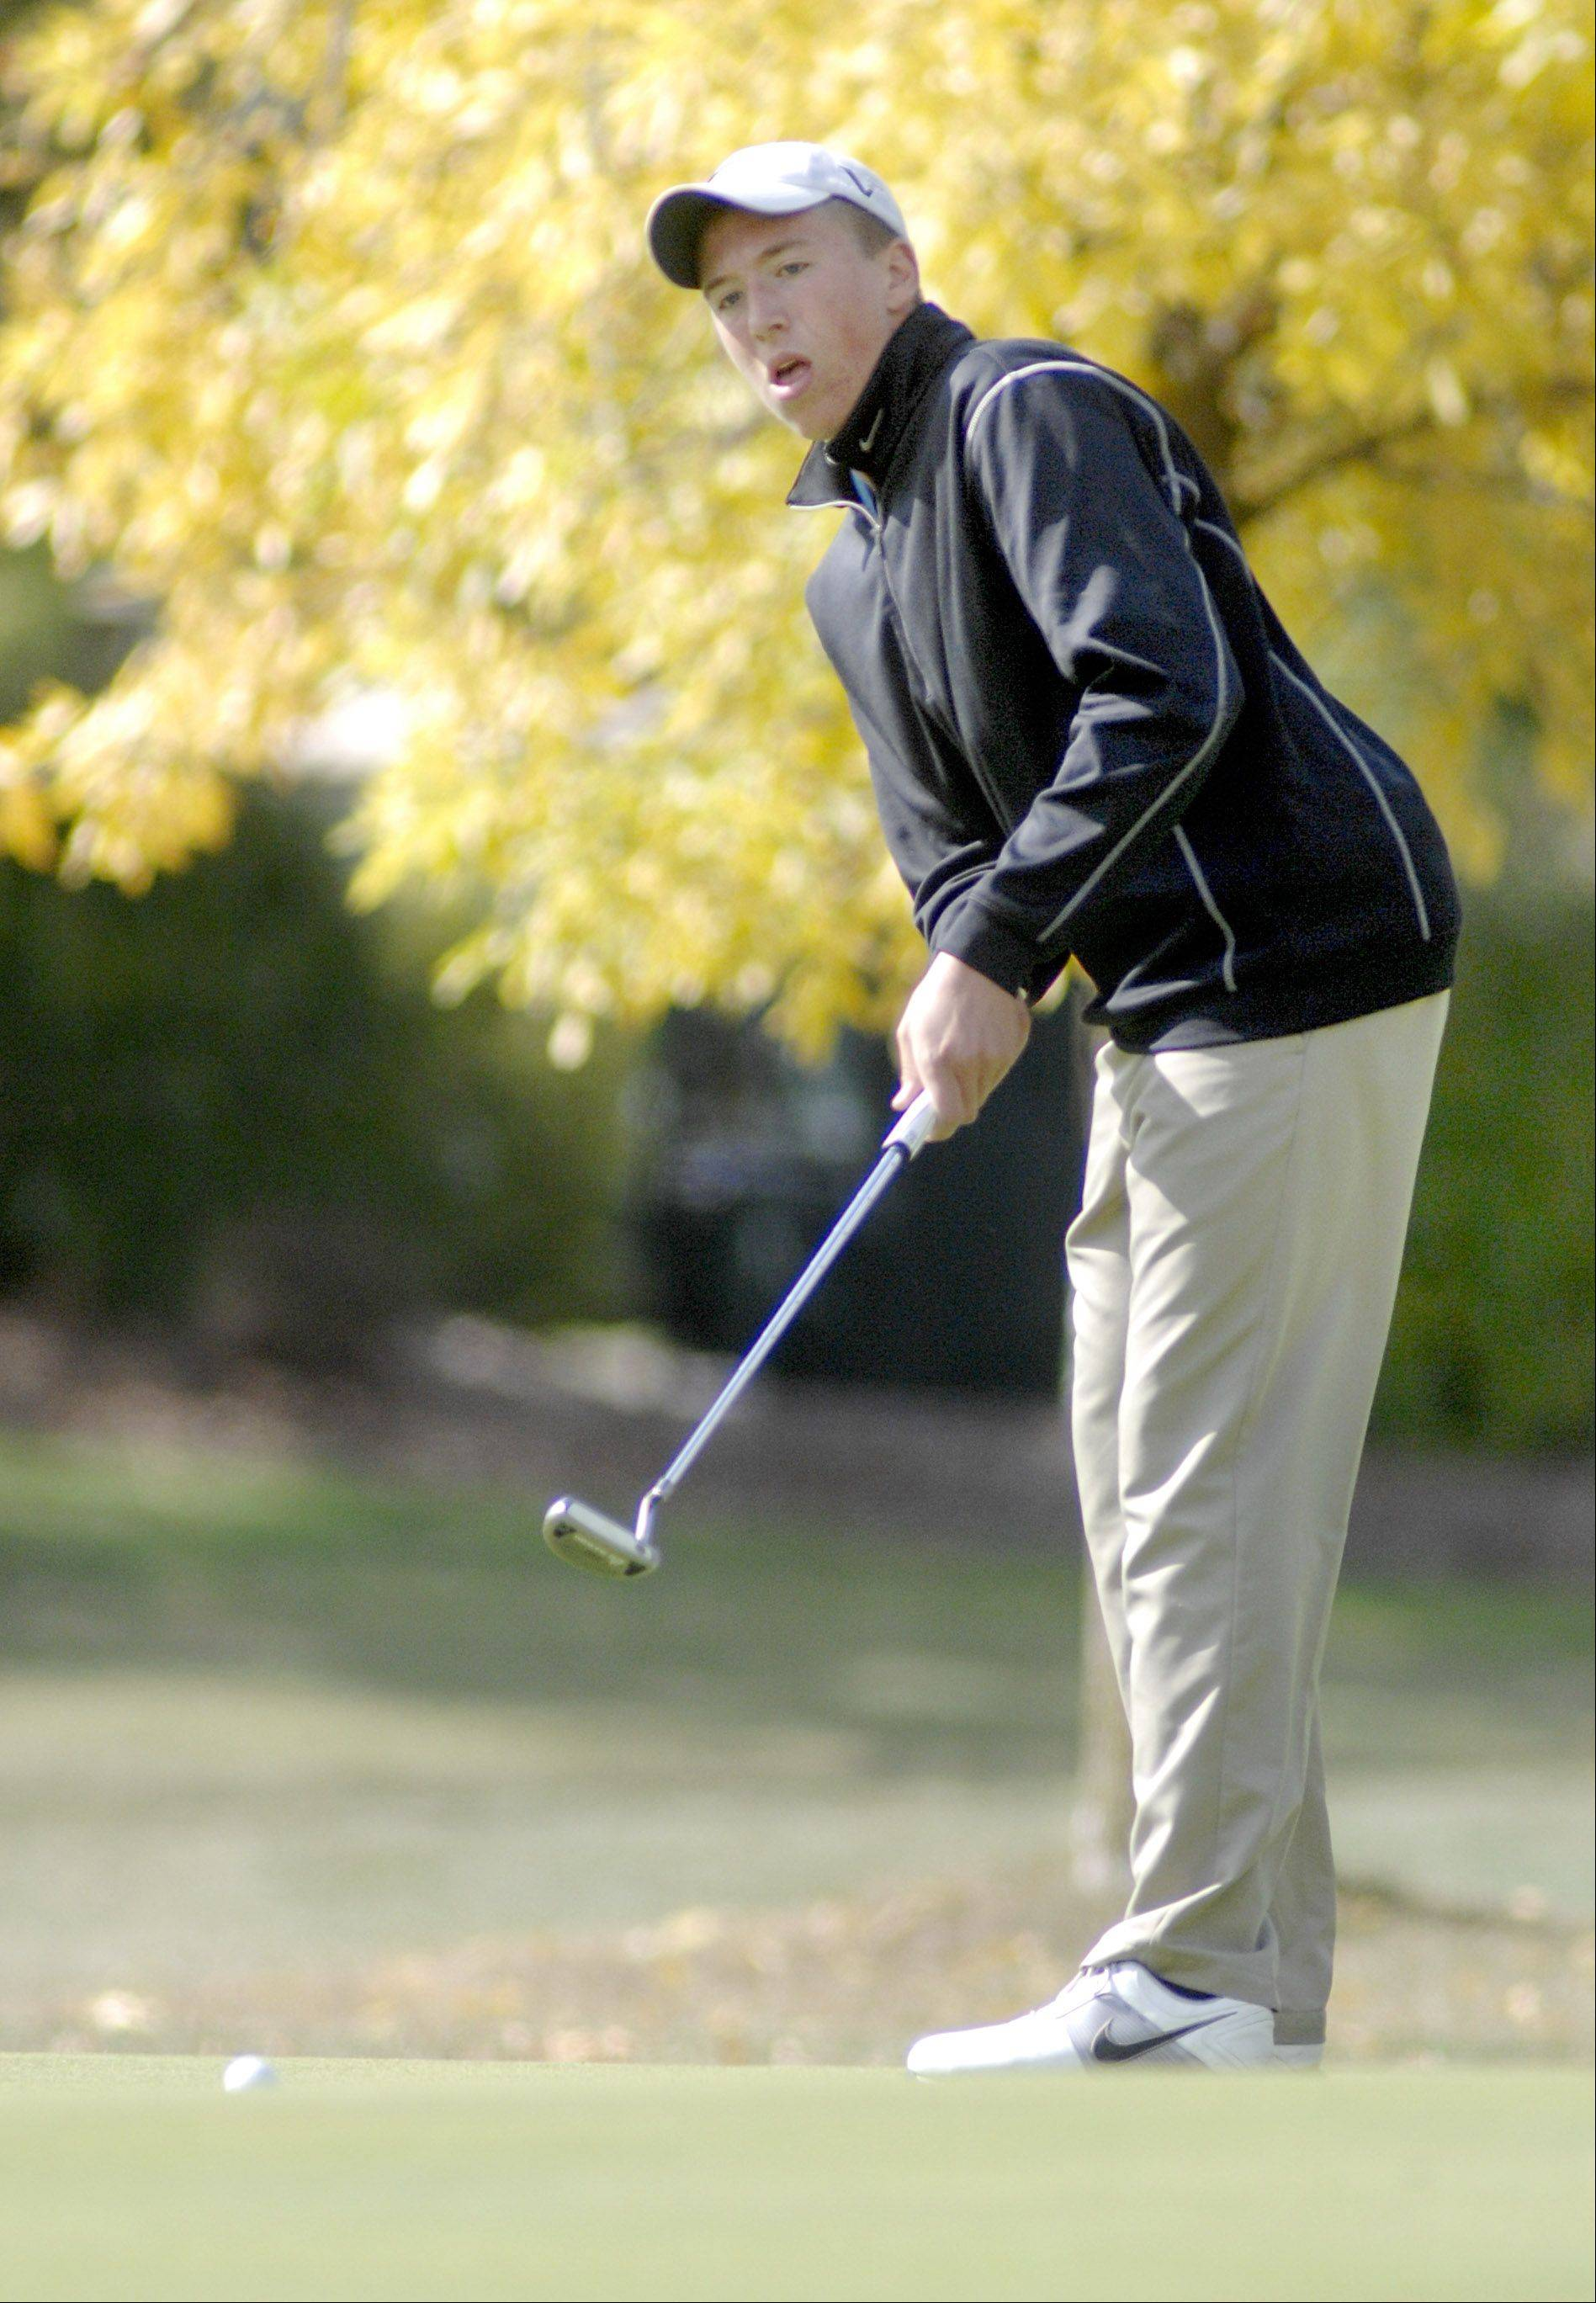 Dundee-Crown's Brenton Barrett on the eleventh hole in the Fox Valley Conference tournament at Crystal Woods Golf Course in Woodstock on Thursday, September 27.